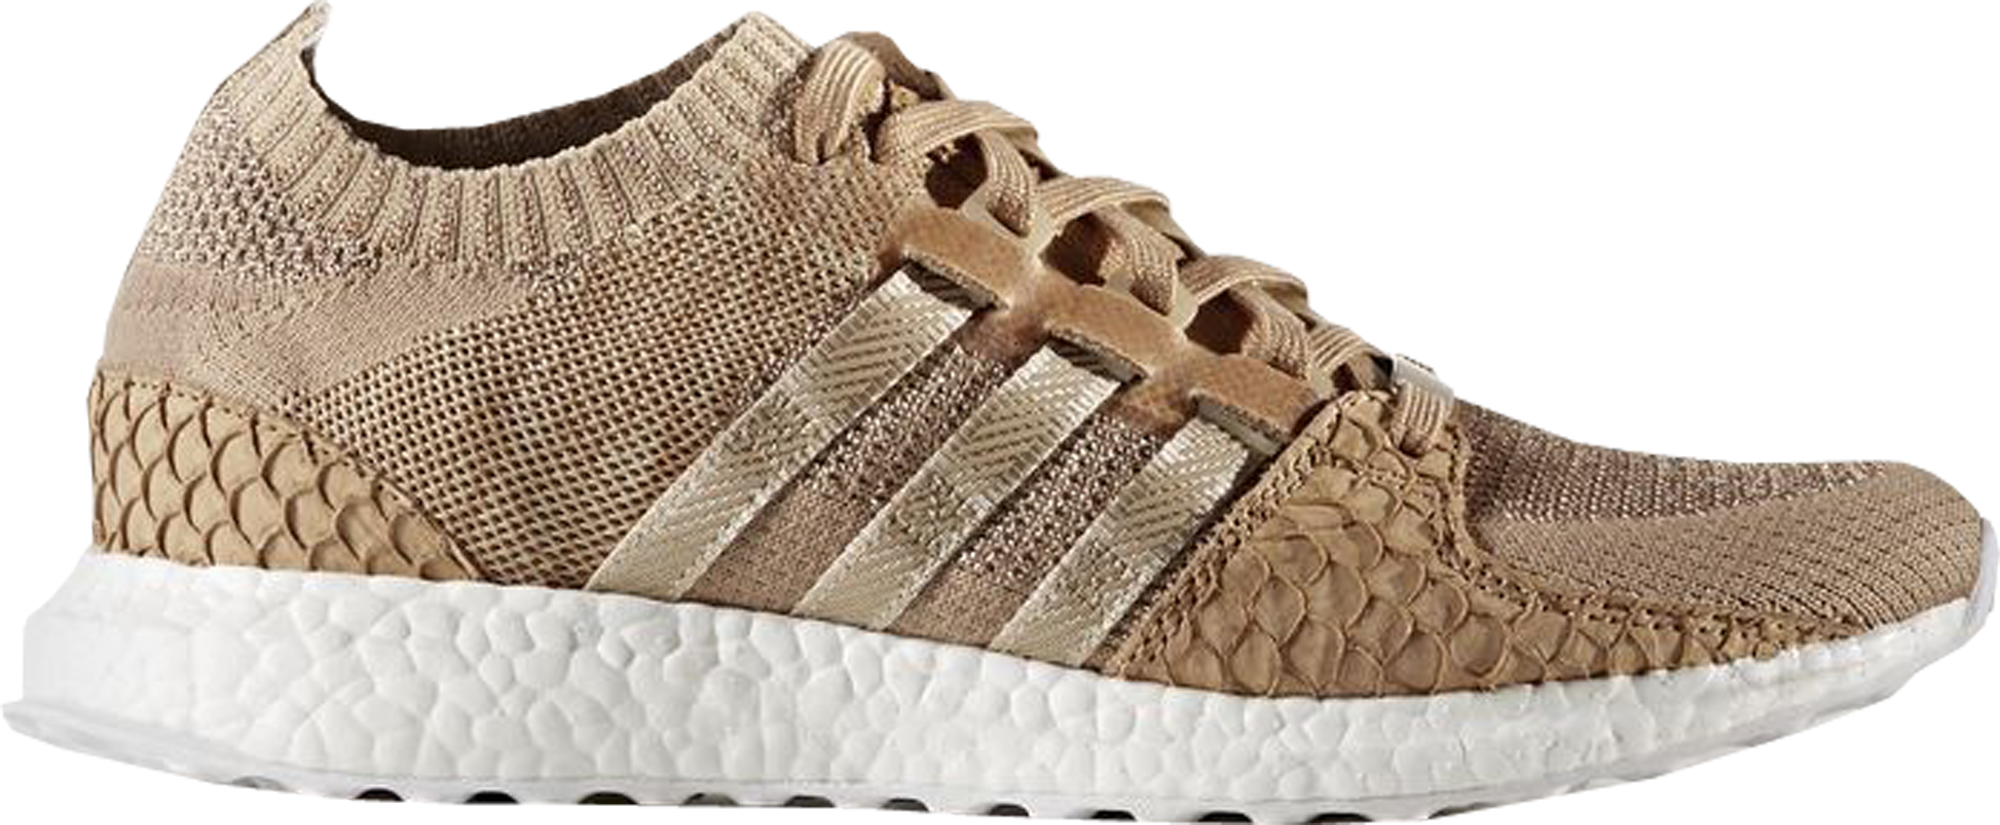 adidas EQT Support Ultra Pusha T Brown Paper Bag Bodega Babies